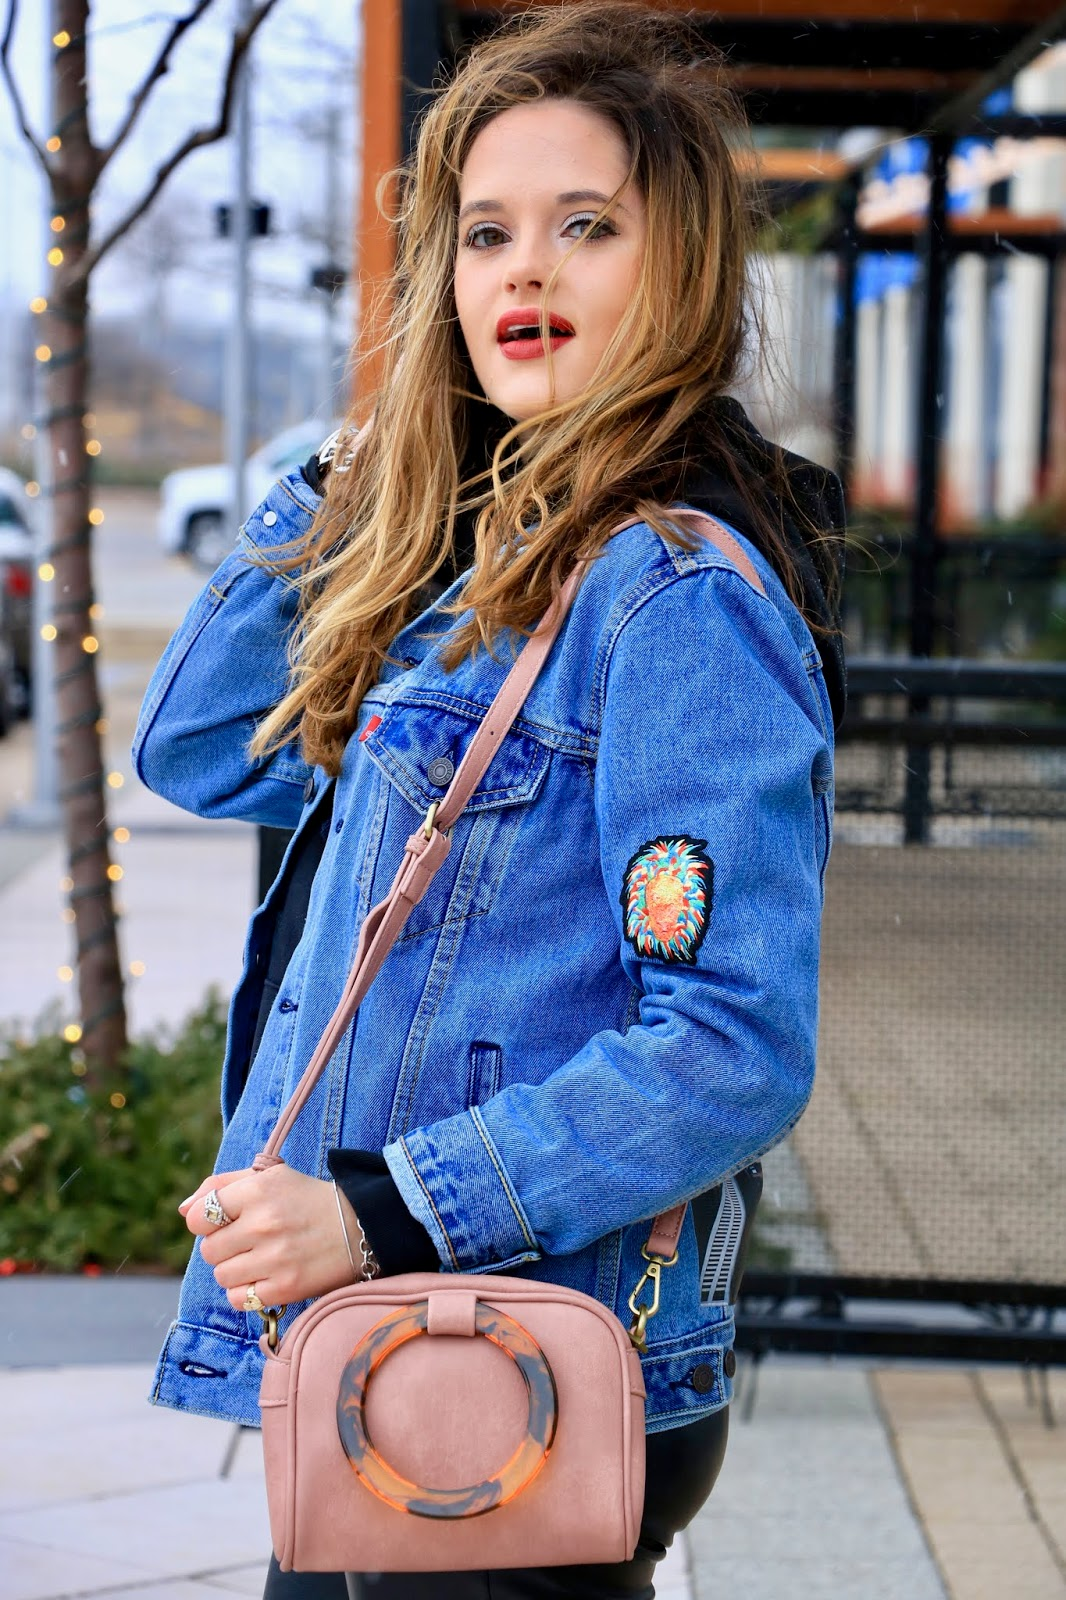 Nyc fashion blogger Kathleen Harper's Levi's street style